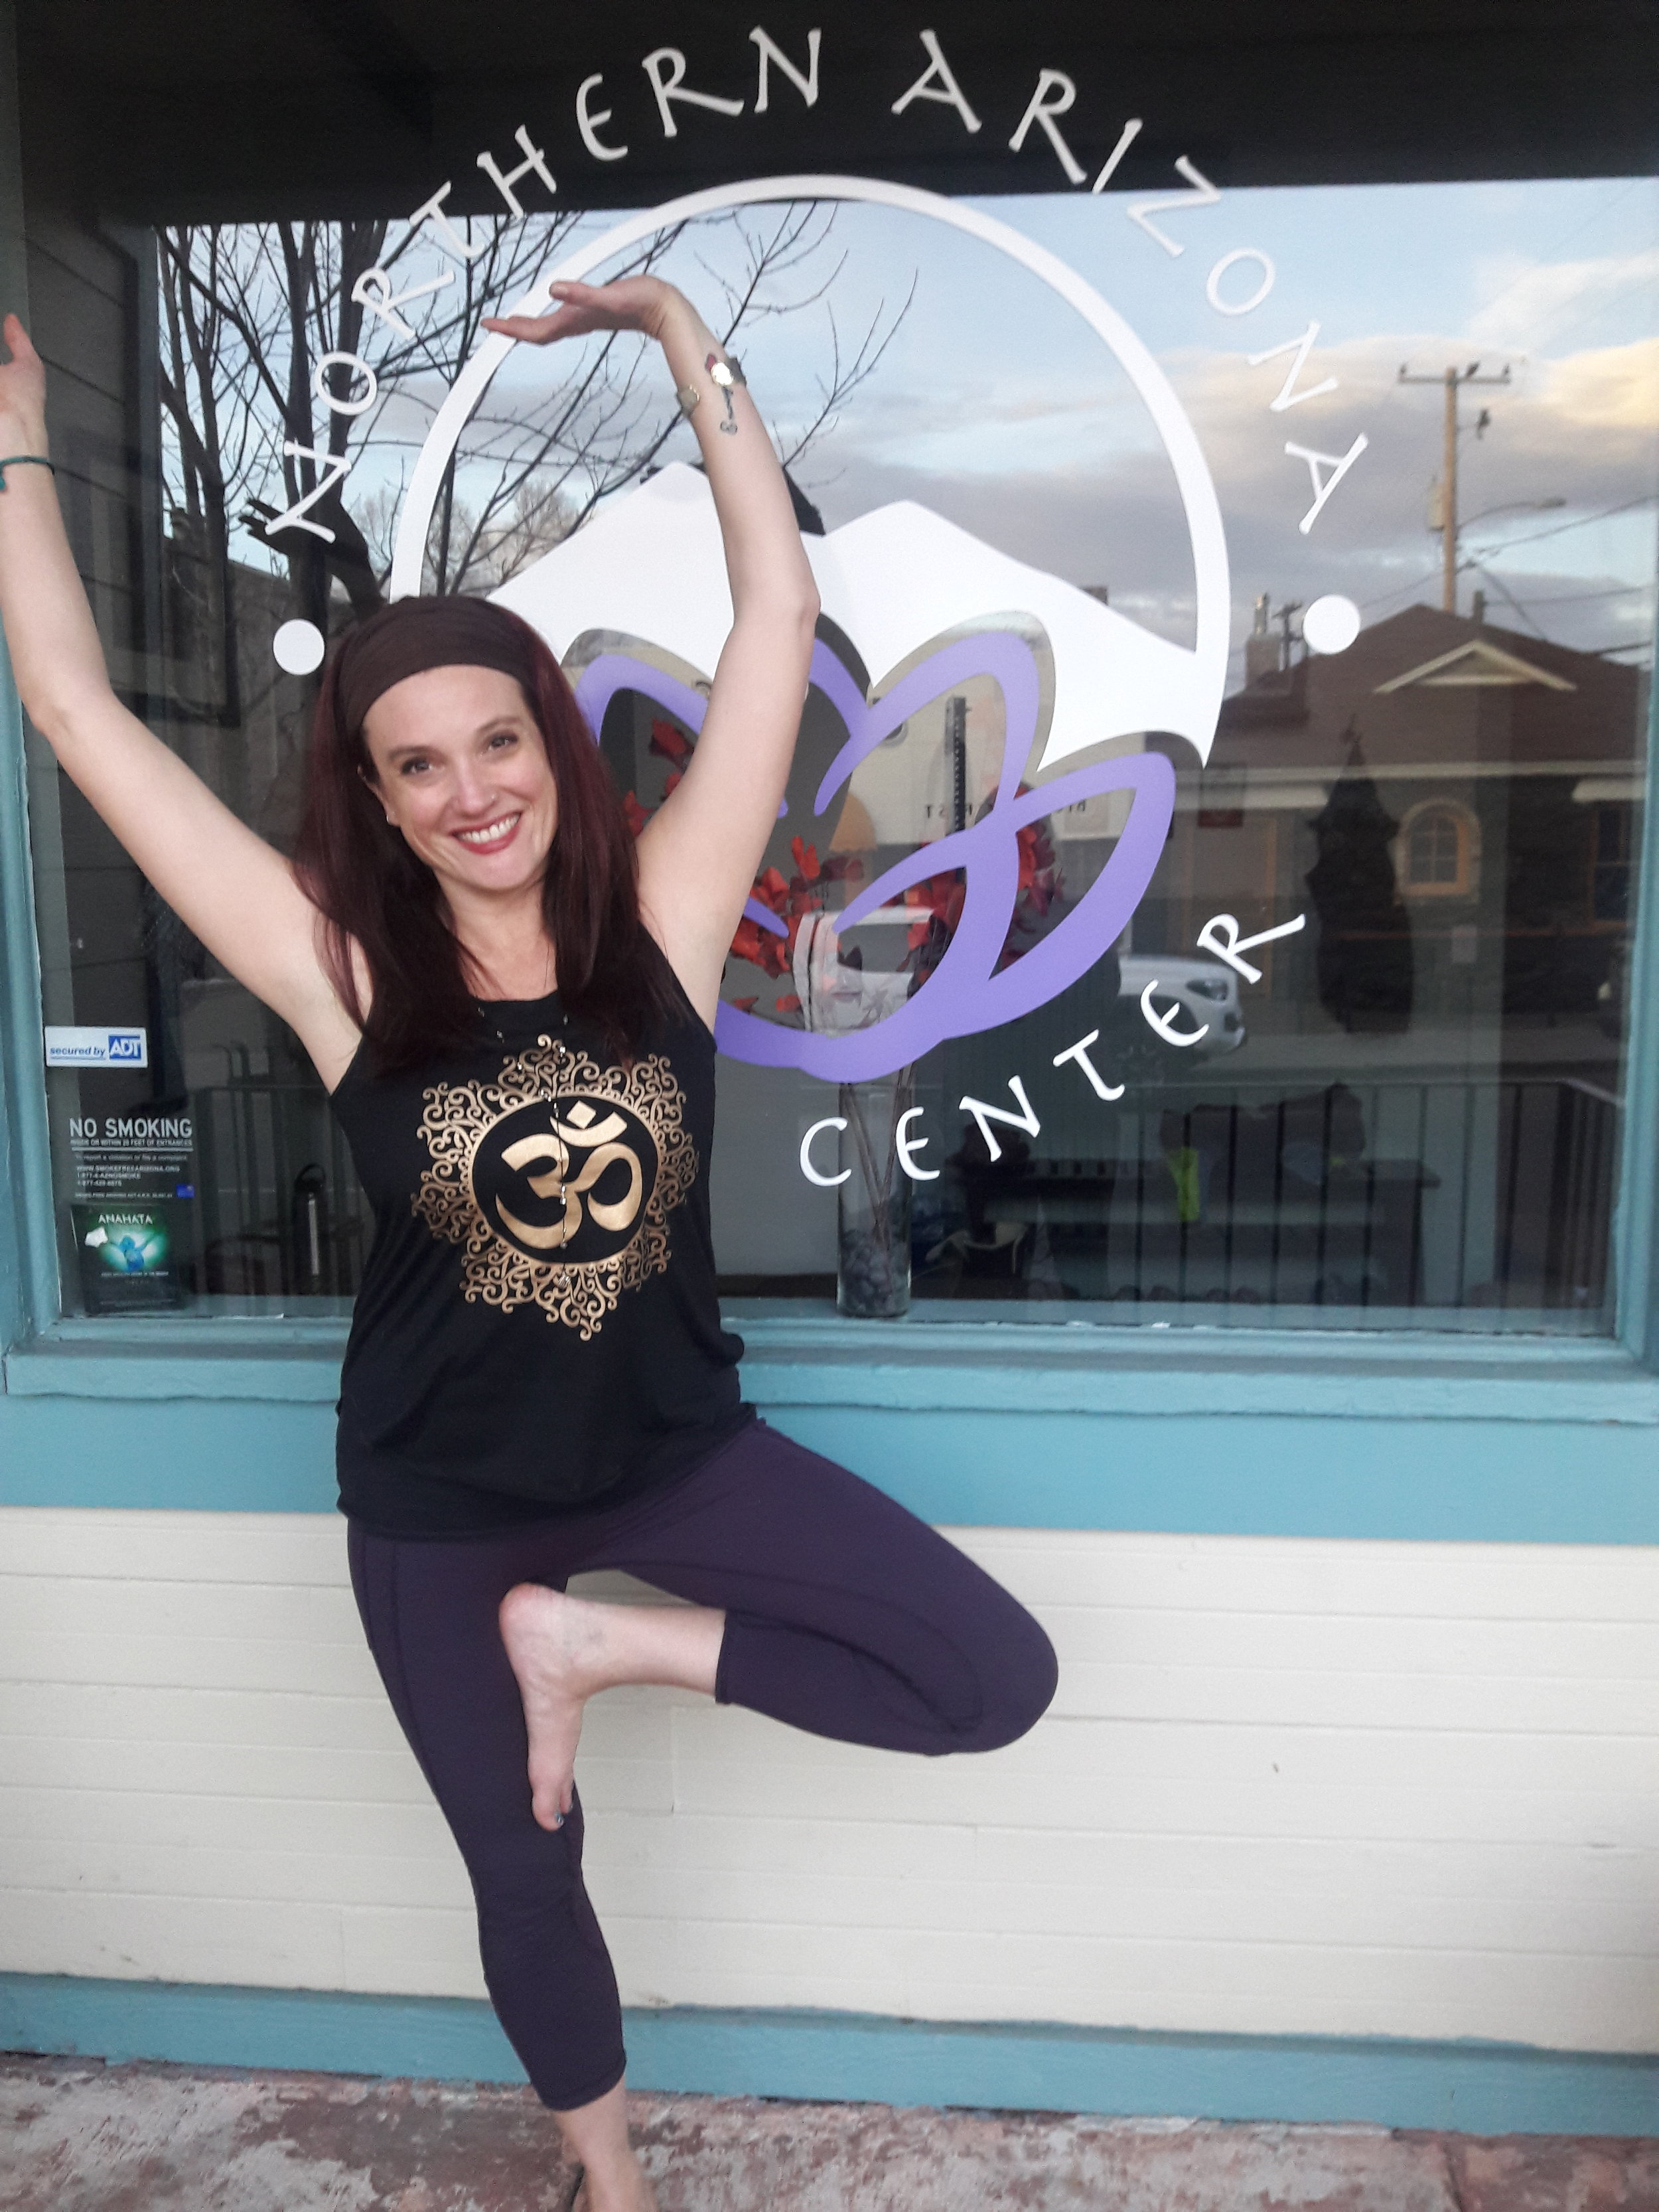 Shannon Arnett - Shannon Arnett, MA, CEHP, RYT-500Shannon has been teaching yoga since 2010, and is certified through the Unity Yoga Traditions (200 hr) with The Southwest Institute of Healing Arts. She completed her 500 hour Yoga Teacher Training with Vertical Soul Yoga at Northern Arizona Yoga Center. Shannon found yoga as a healing practice in her own life in 2003 and has been practicing many forms ever since. In collaboration with her psychology and energy health background, she weaves yoga throughout her spiritual and professional practice as a holistic coach with clients in her LLC and with patients in her role as a Whole Health Coach with Vera Whole Health.Shannon's classes are dedicated to all levels, all beings feeling at home in the experience of the body, with yoga as a powerful and gentle conduit for healing, joy, and transformation. Yoga for Shannon has been an wonderful vehicle to acceptance and she strives to bring this to each of her classes whether they be a challenging flow format or a gentle guided yin/meditation experience. Northern Arizona Yoga Center is her studio home and she is humbled and blessed always by the fellow students and teachers at NAYC